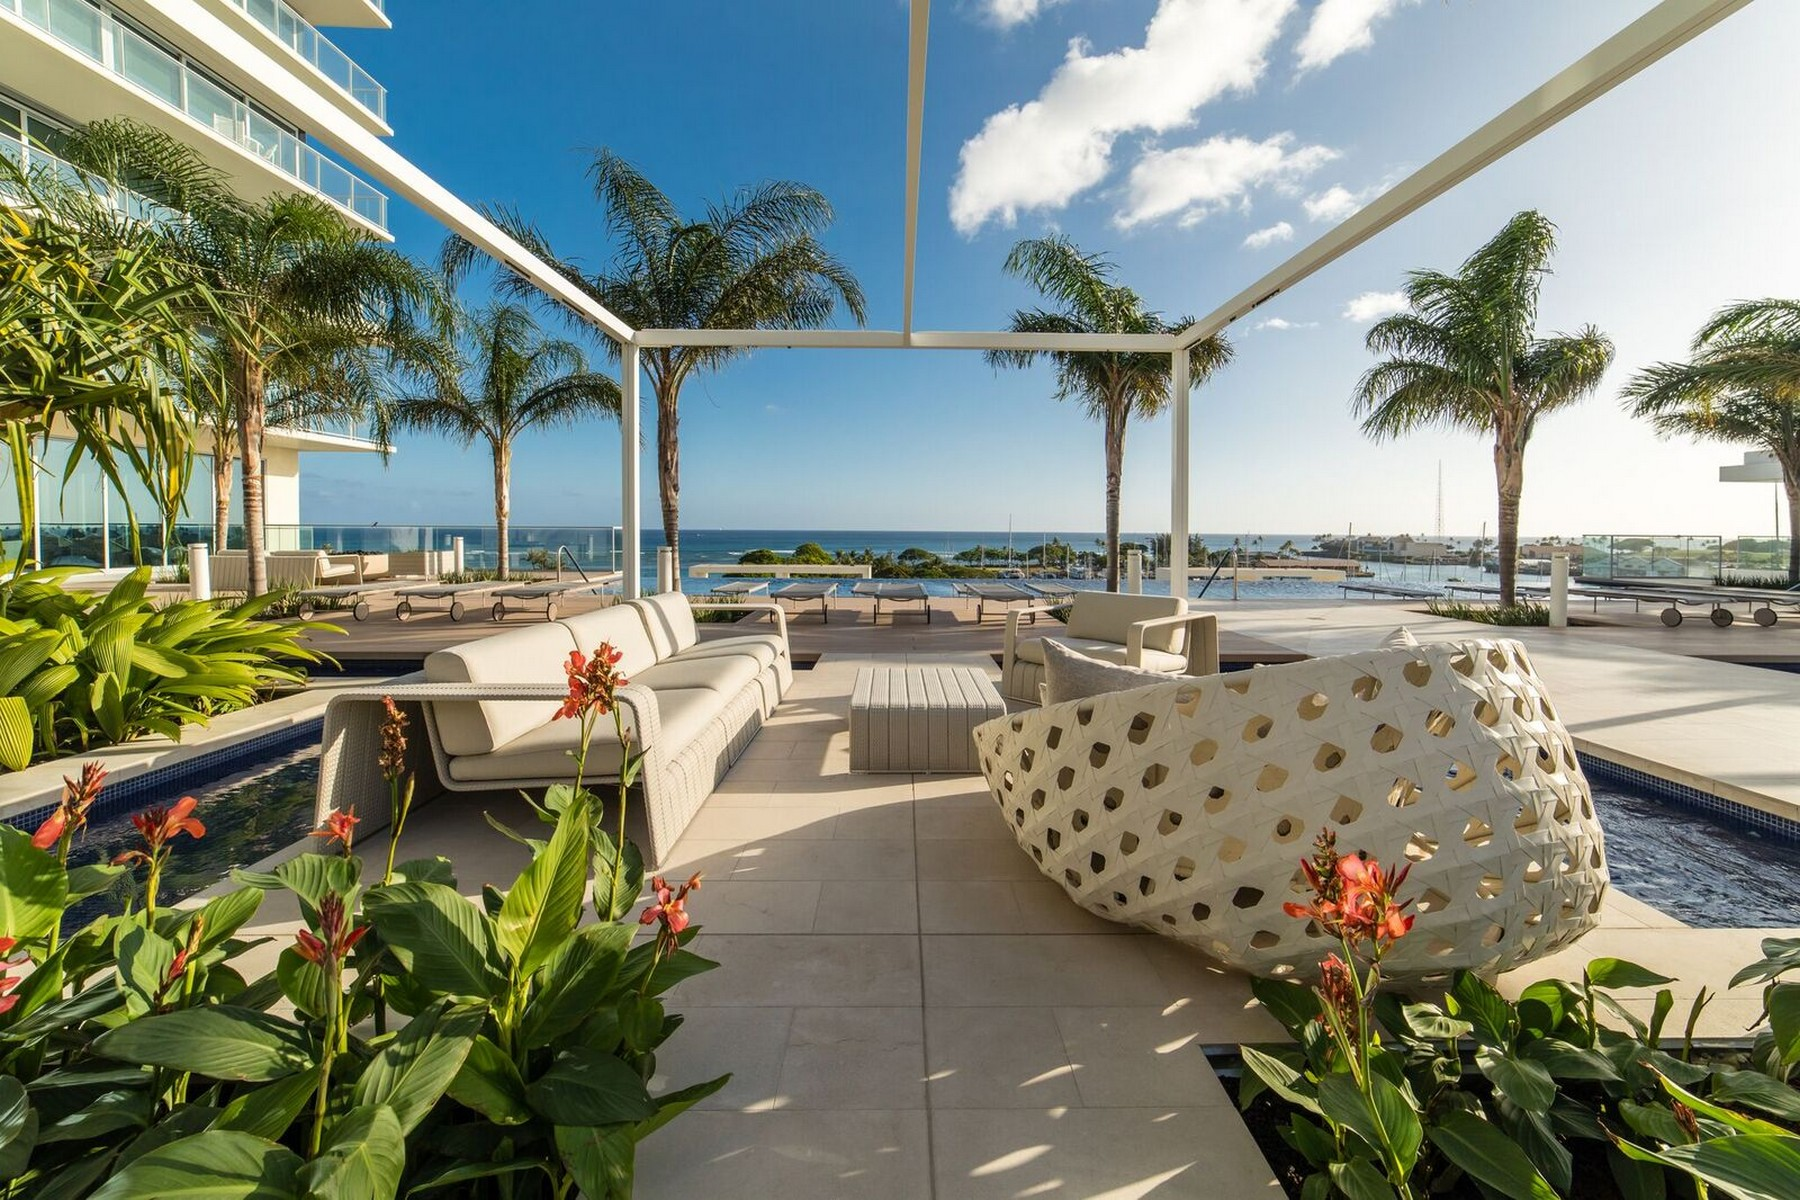 共管物業 為 出售 在 Spectacular Diamond Head and Ocean Views 1118 Ala Moana Blvd #2300, Kakaako, Honolulu, 夏威夷, 96814 美國